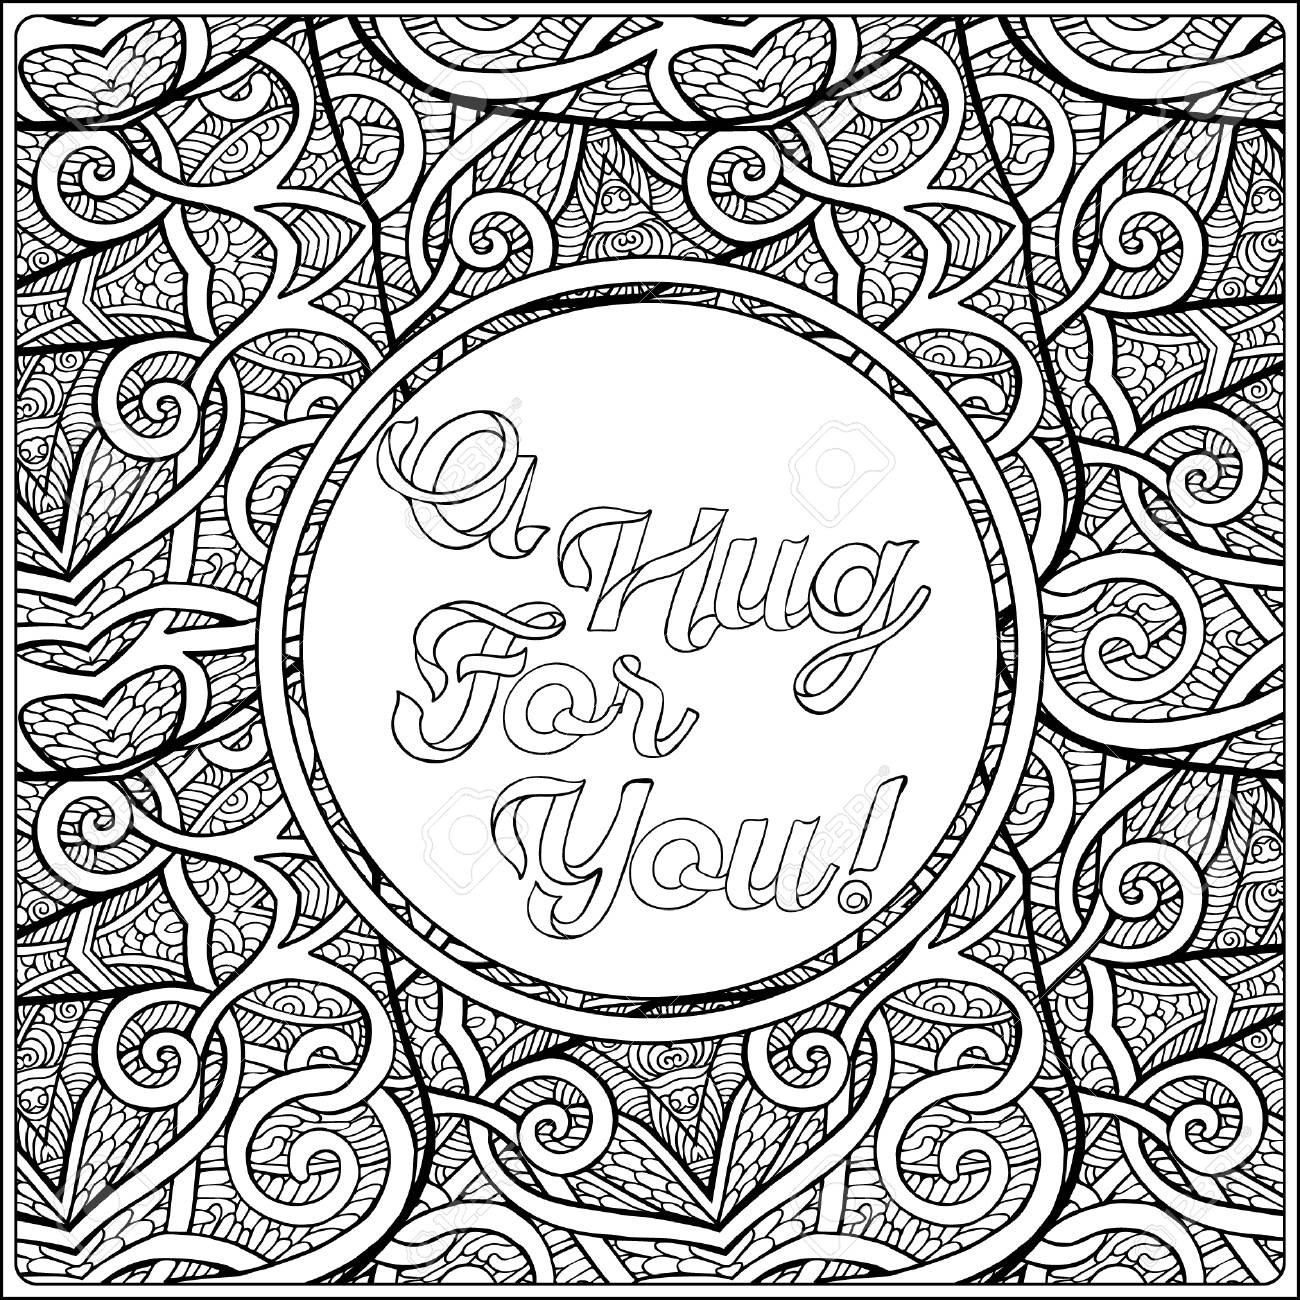 1300x1300 A Hug For You. Coloring Page With Message On Vintage Pattern